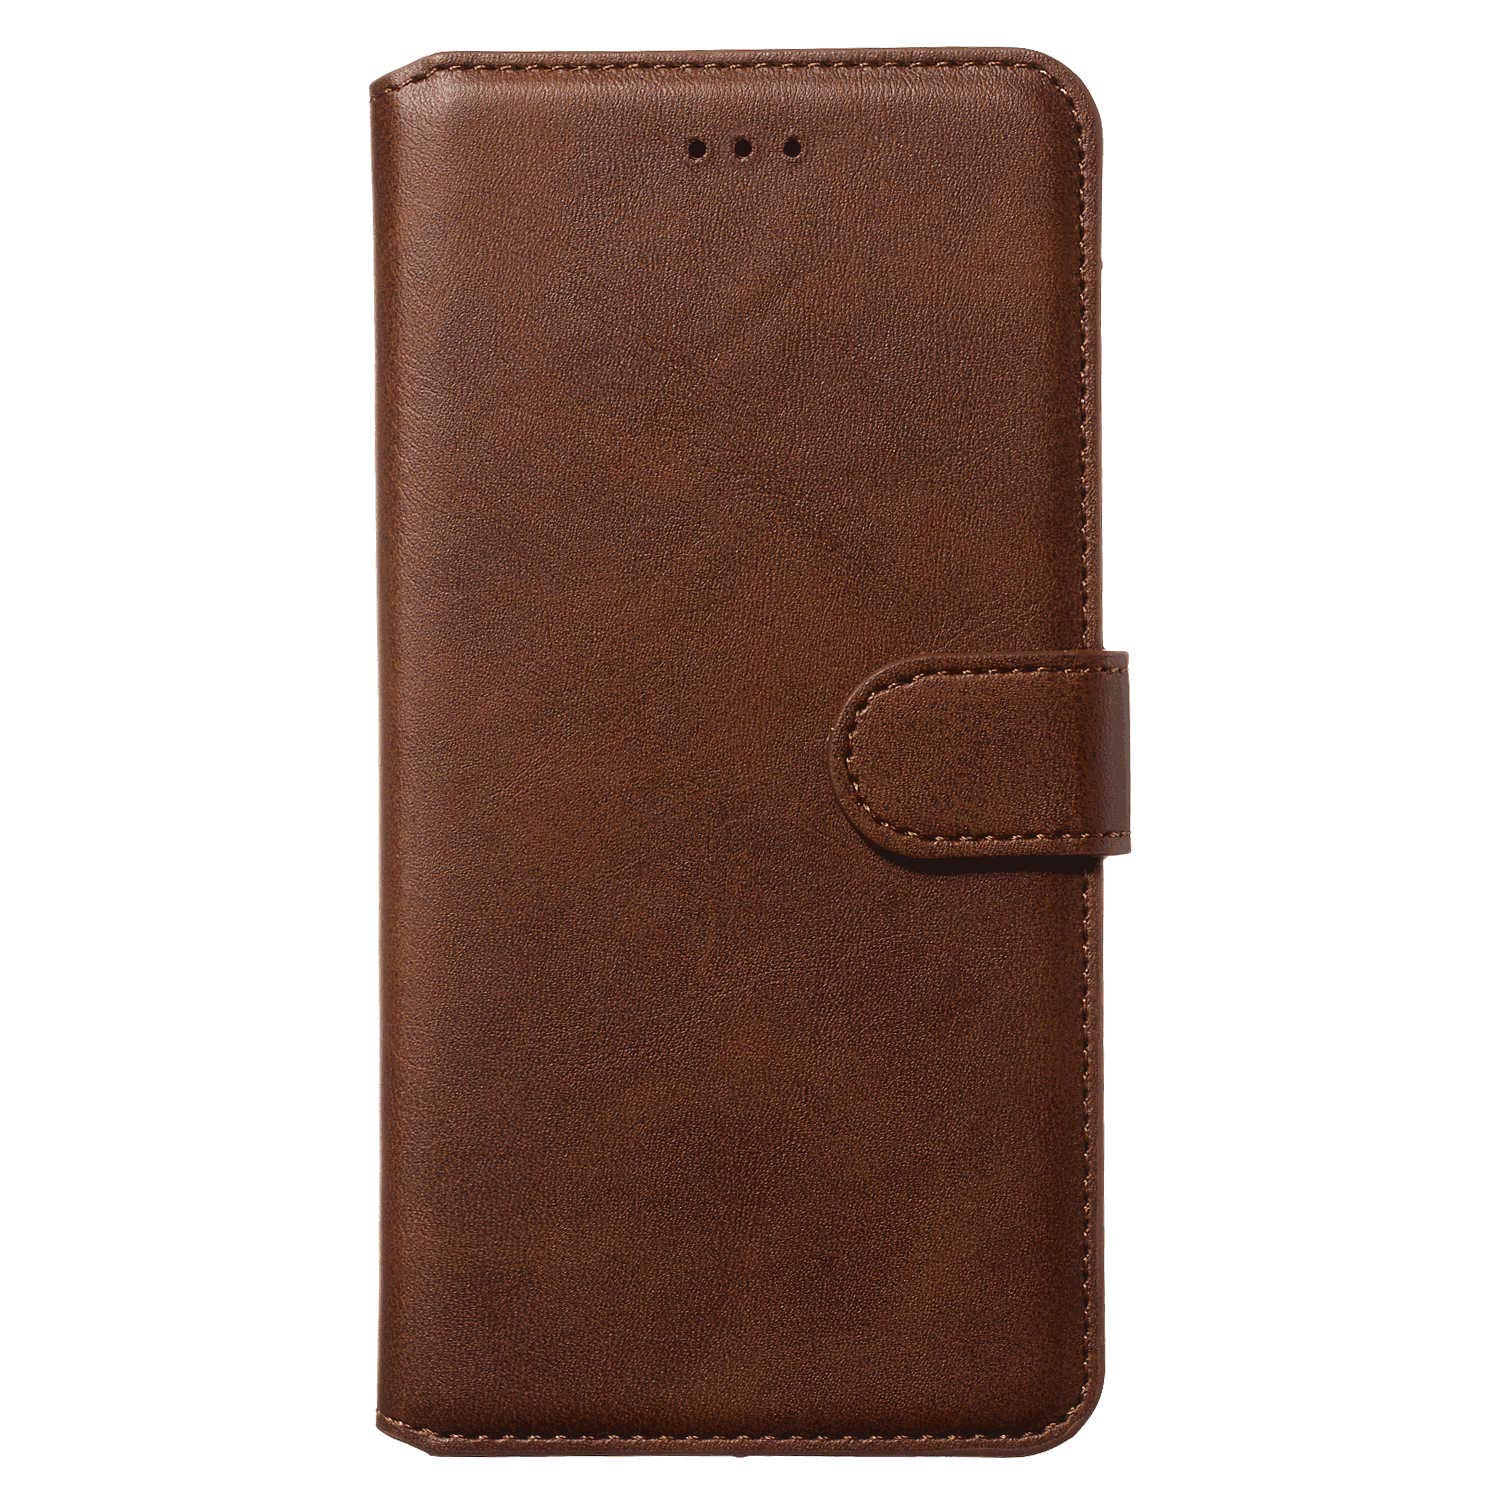 Leather Flip Case Fit for Samsung Galaxy A50 Brown Wallet Cover for Samsung Galaxy A50